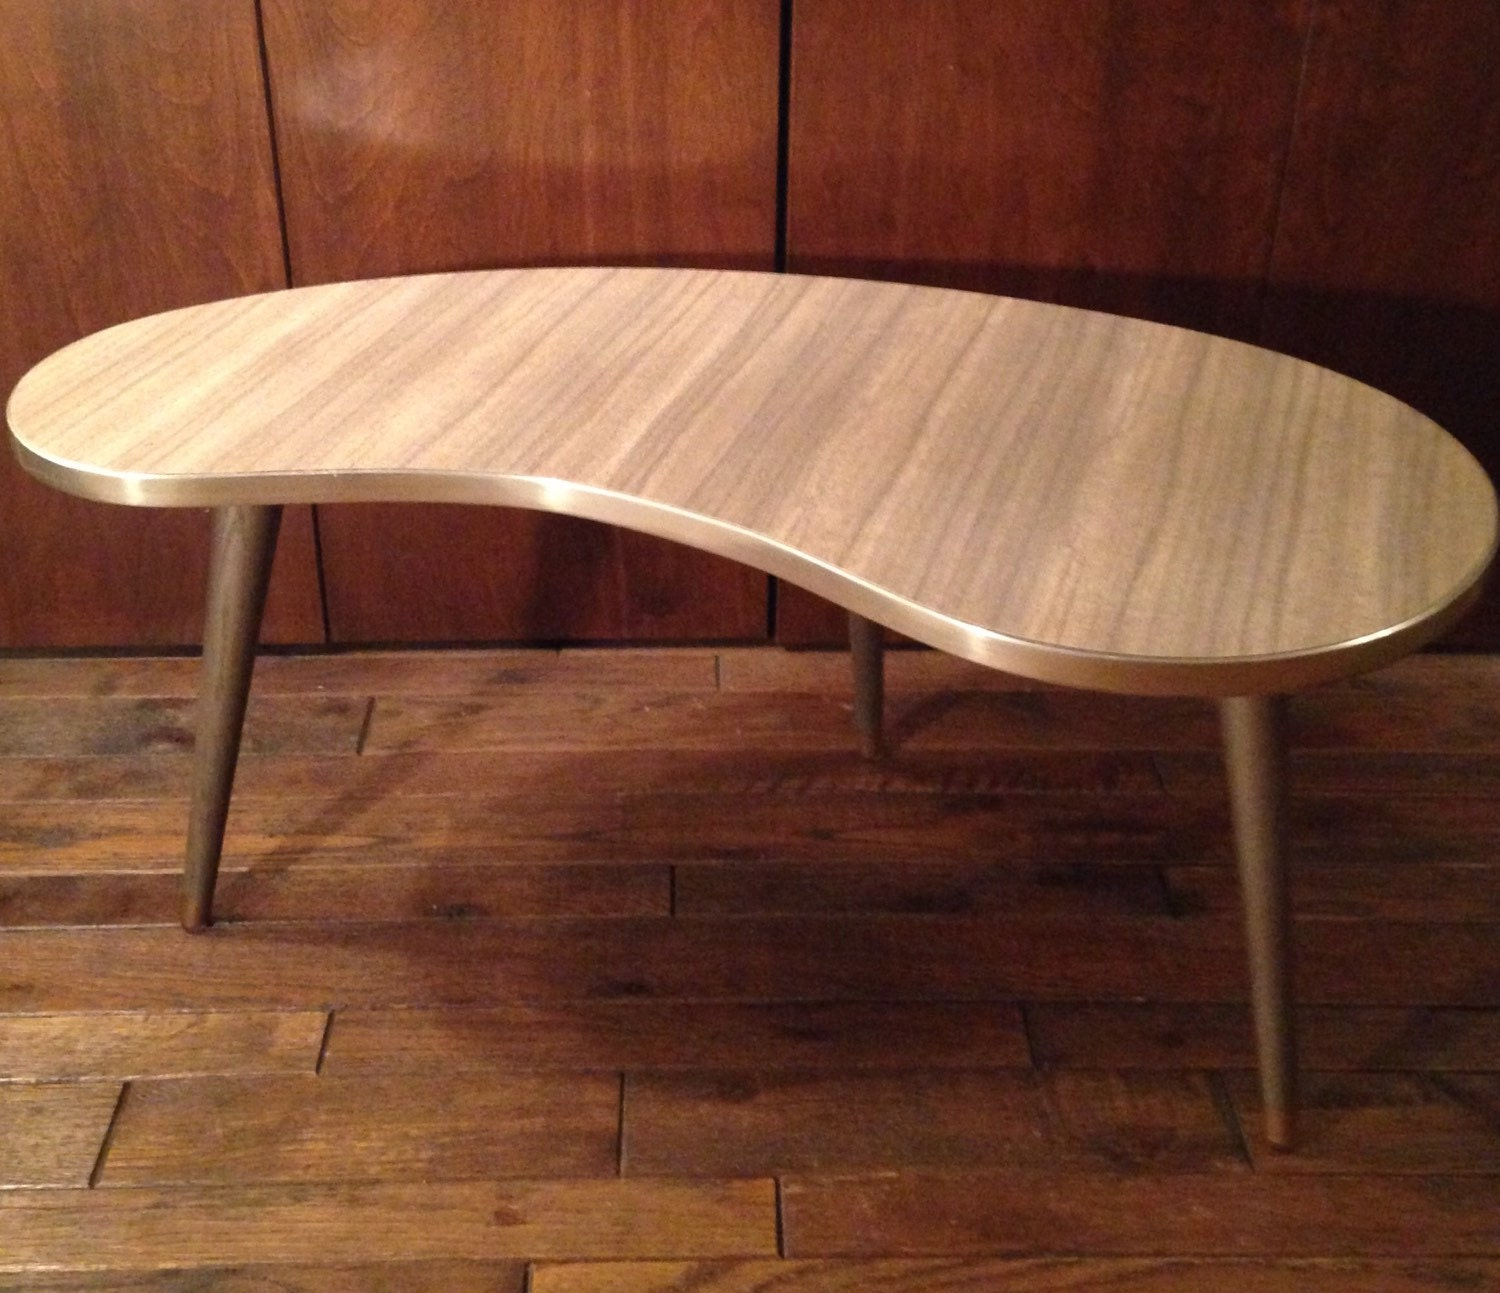 Kidney Bean Coffee Table Formica Top With Brass Edging And